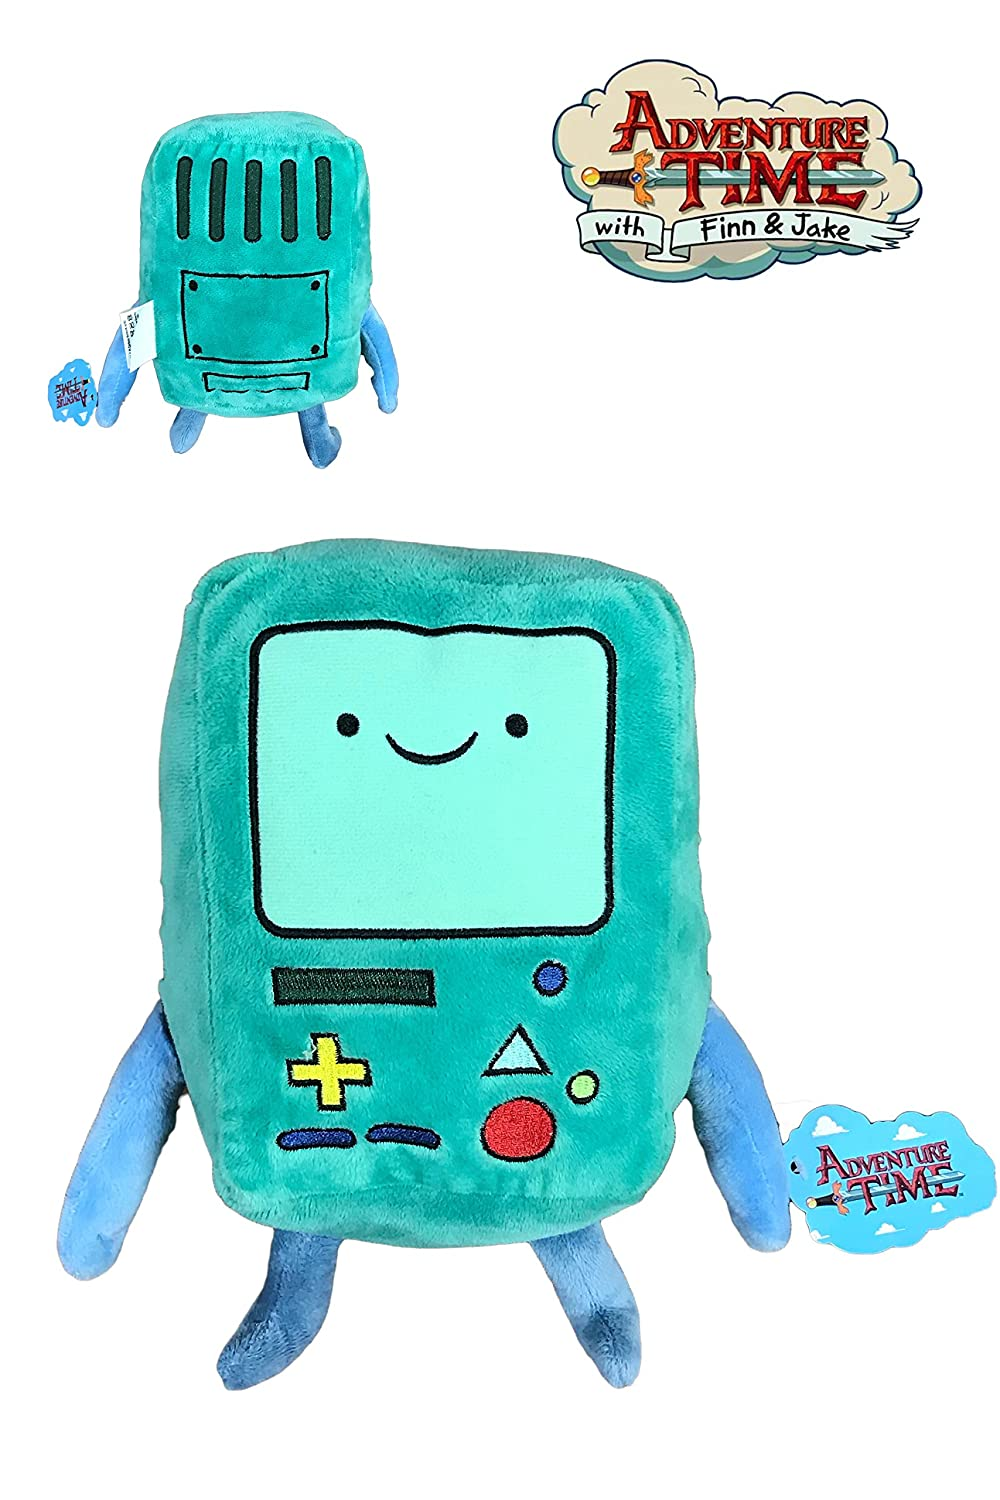 HORA AVENTURA BEEMO PELUCHE VERDE 22CM DE PIE 18CM SENTADO CALIDAD SUPER SOFT CARTOON NETWORK